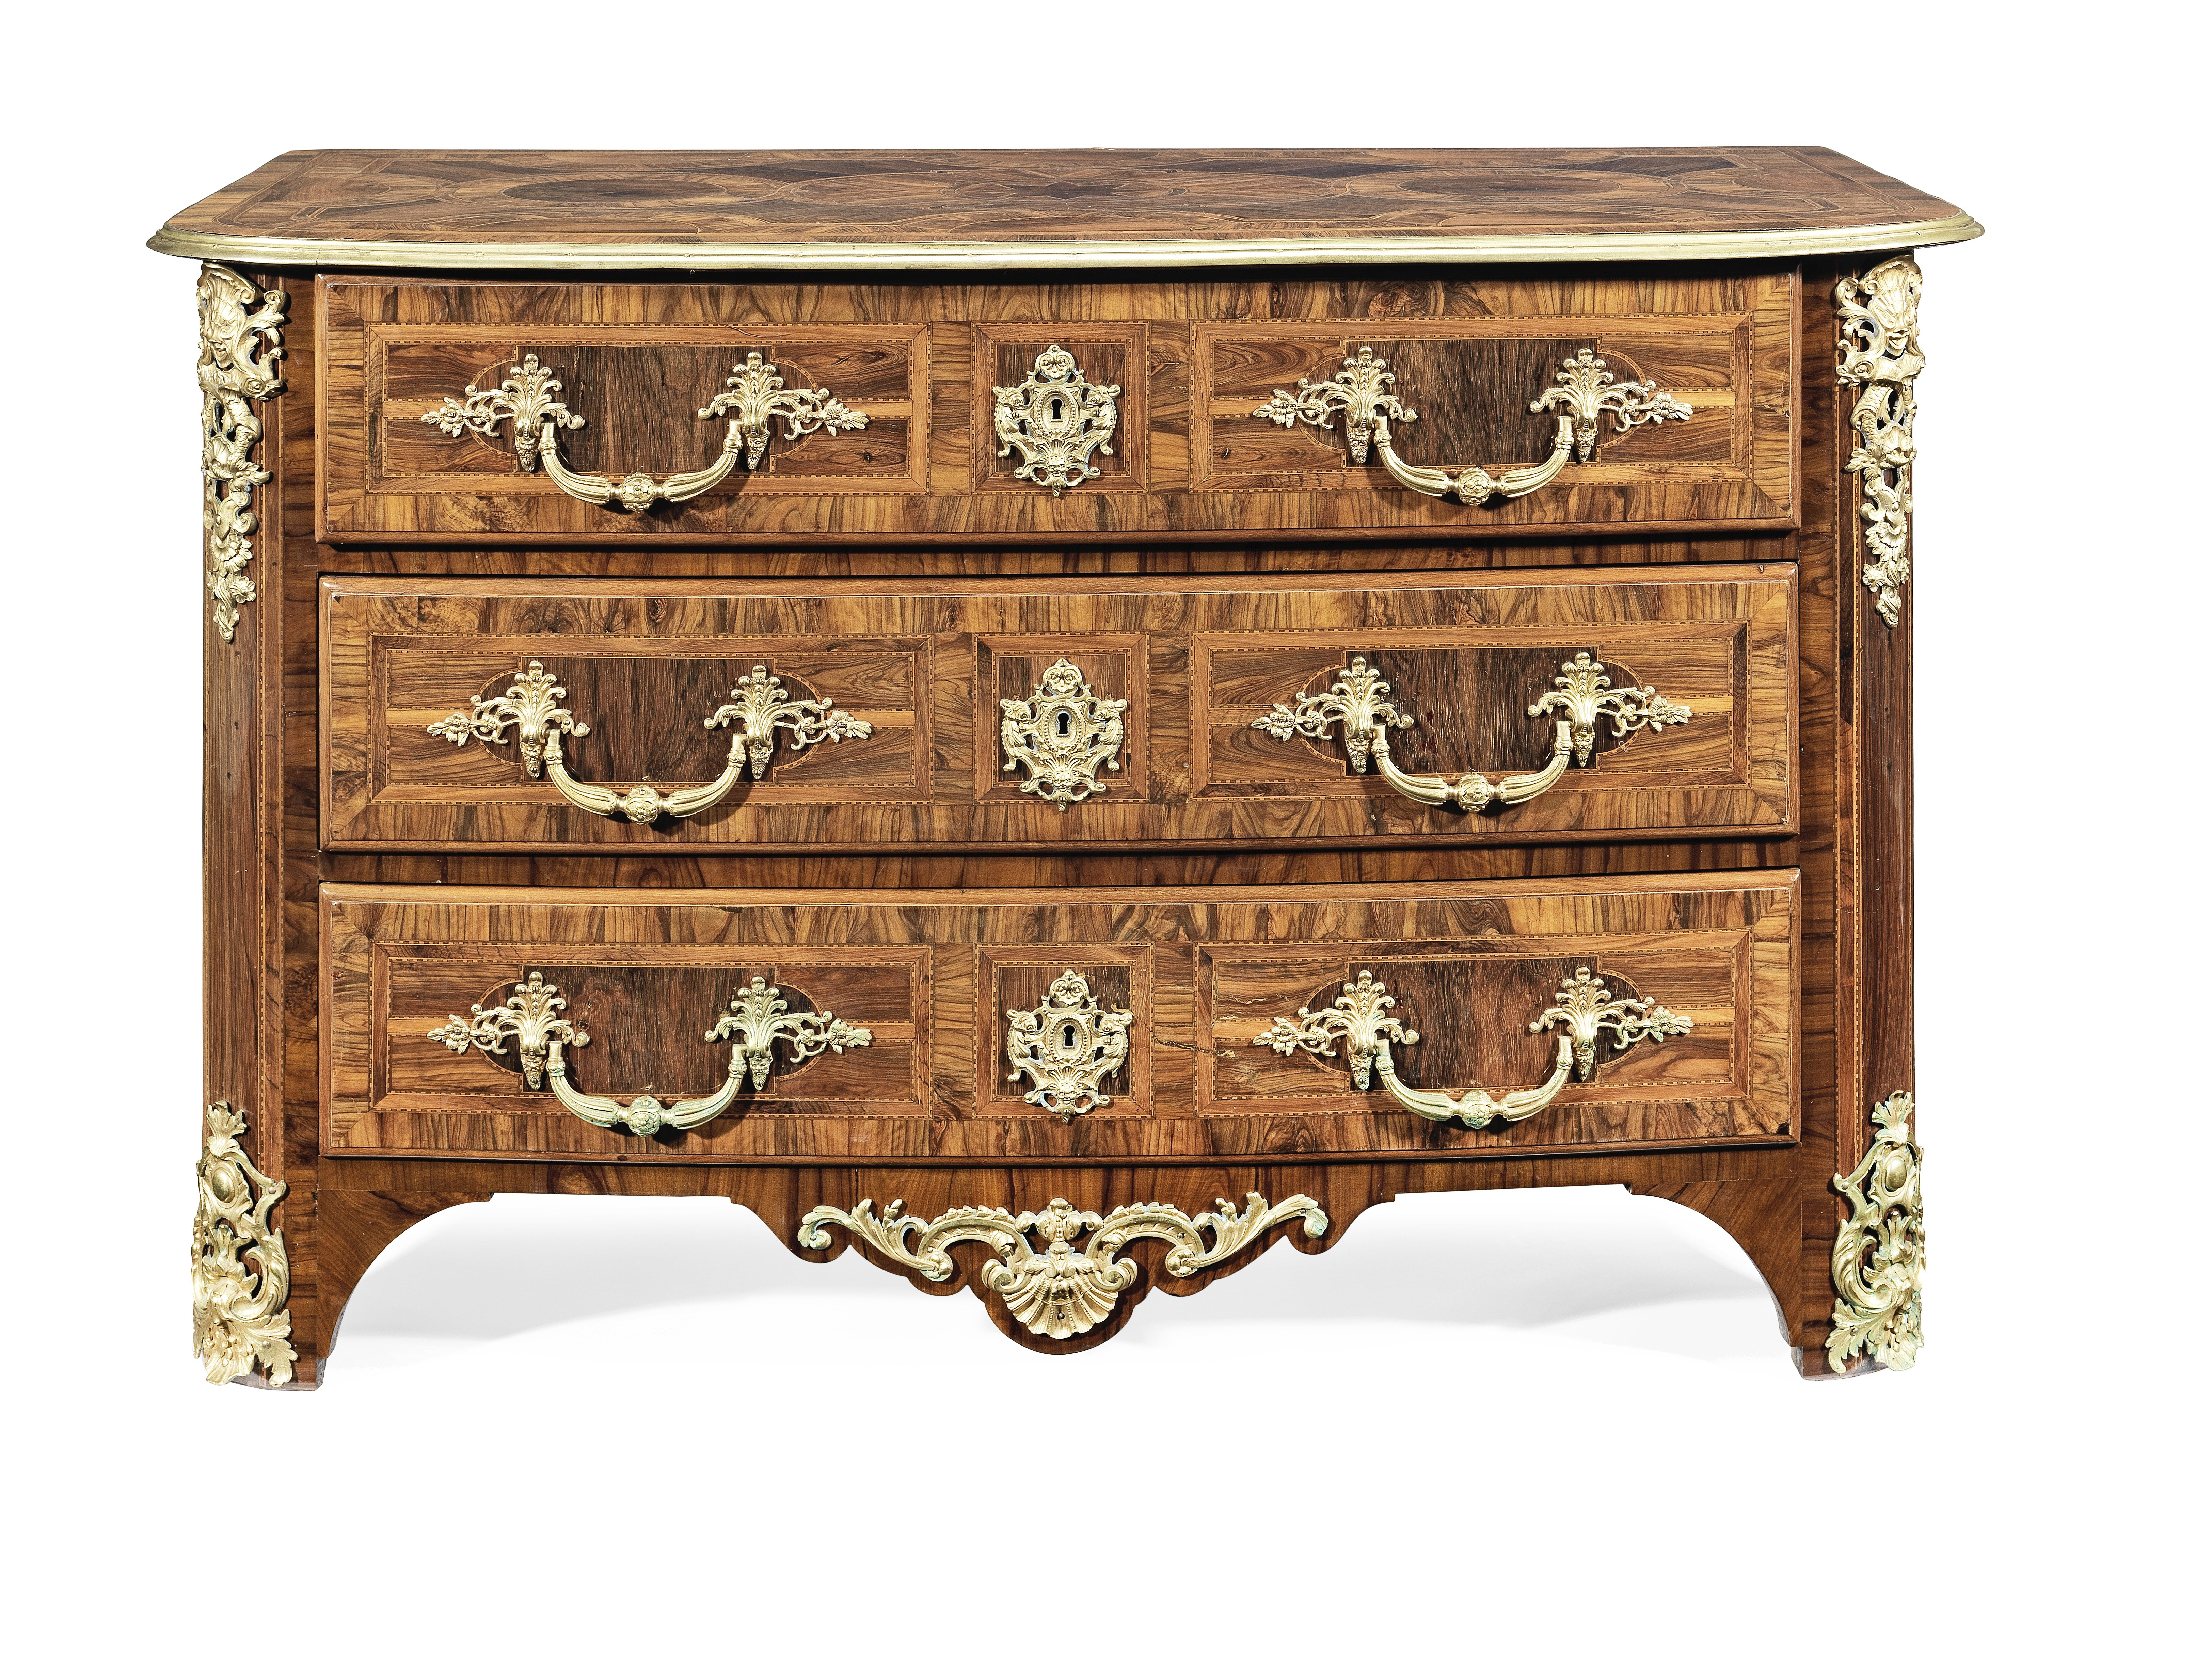 Lot 49 - A Regence ormolu mounted olivewood, rosewood, burr elm, walnut and chequer inlaid commode attribu...